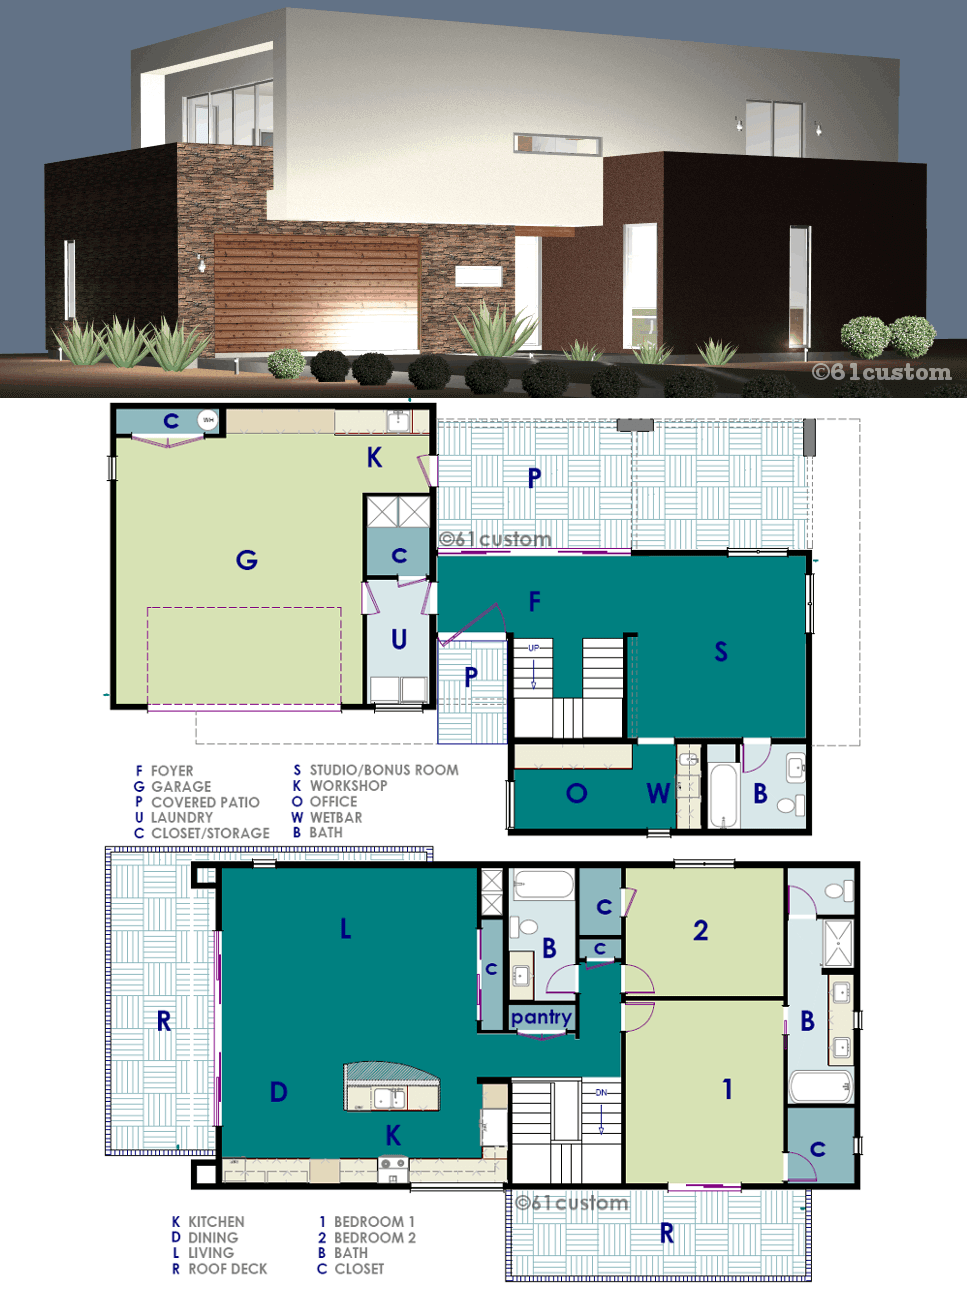 Ultra modern live work house plan 61custom for Modern home blueprints